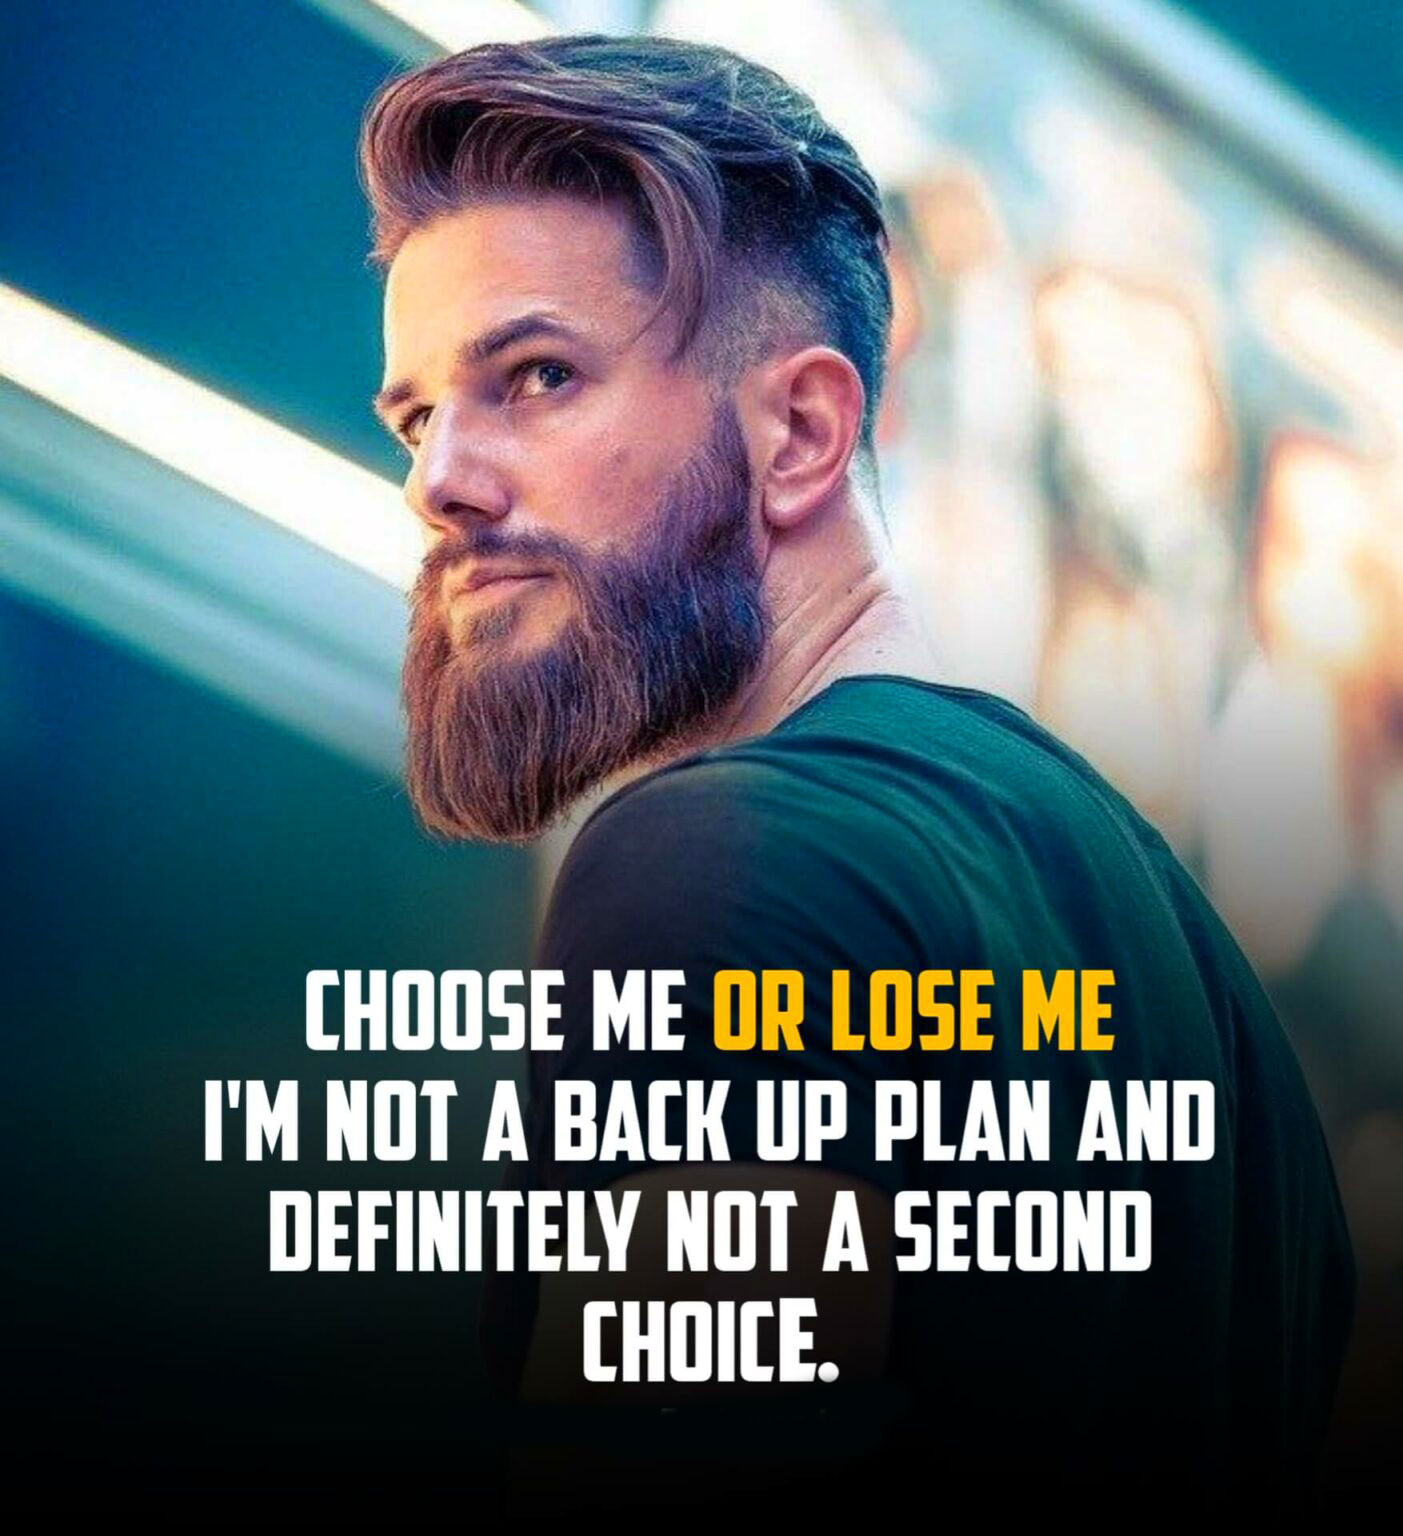 2021 Latest Attitude Dp For Boy Images hd